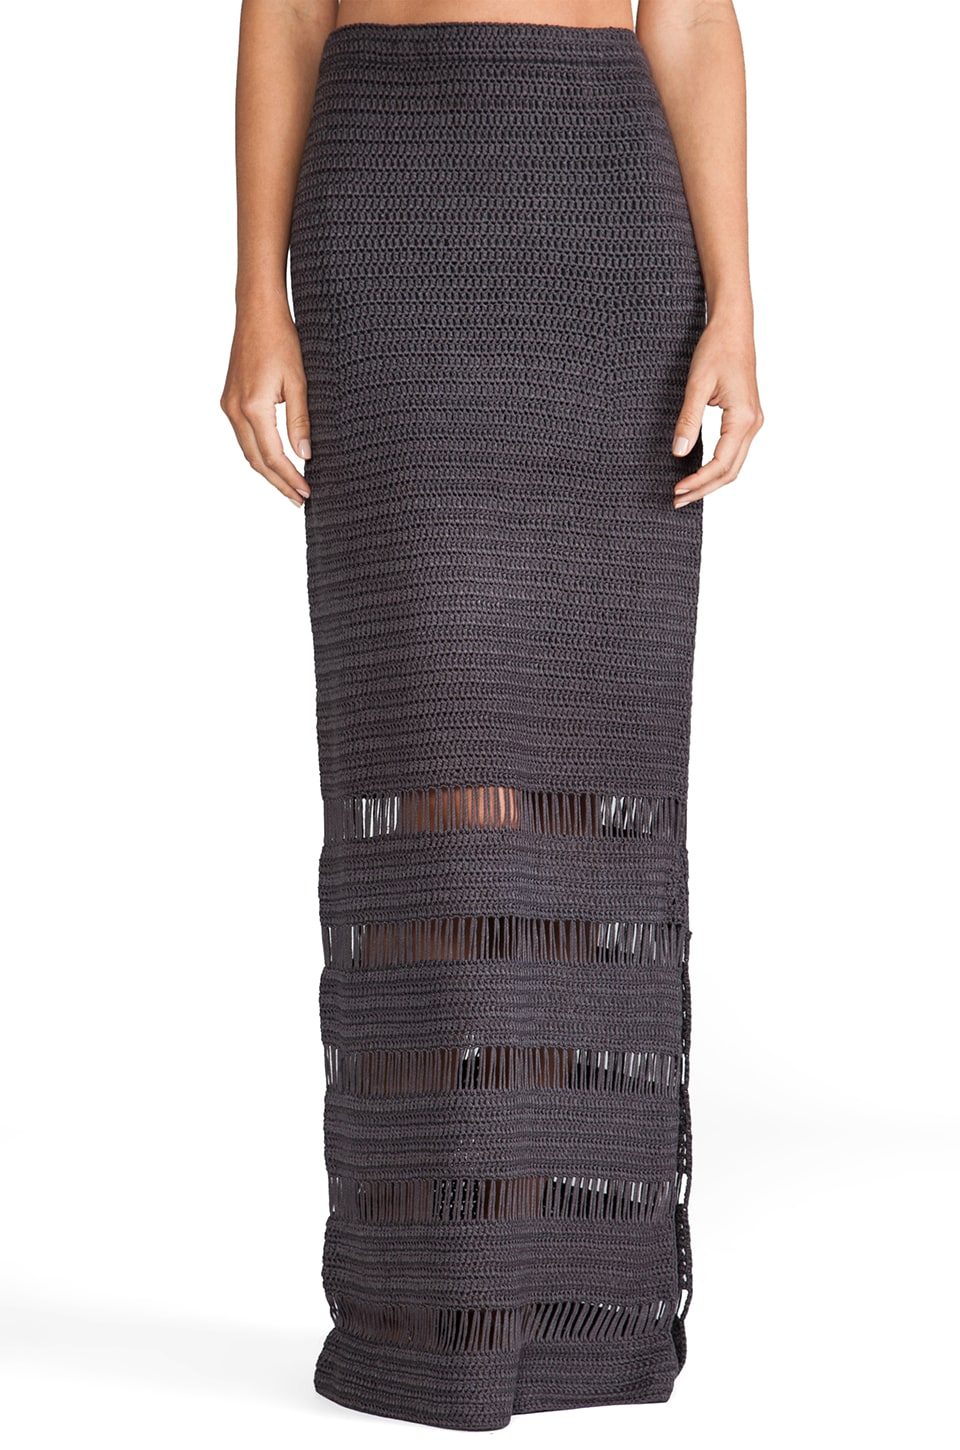 Lisa Maree Five Steps Crochet Maxi Skirt in Acid Black